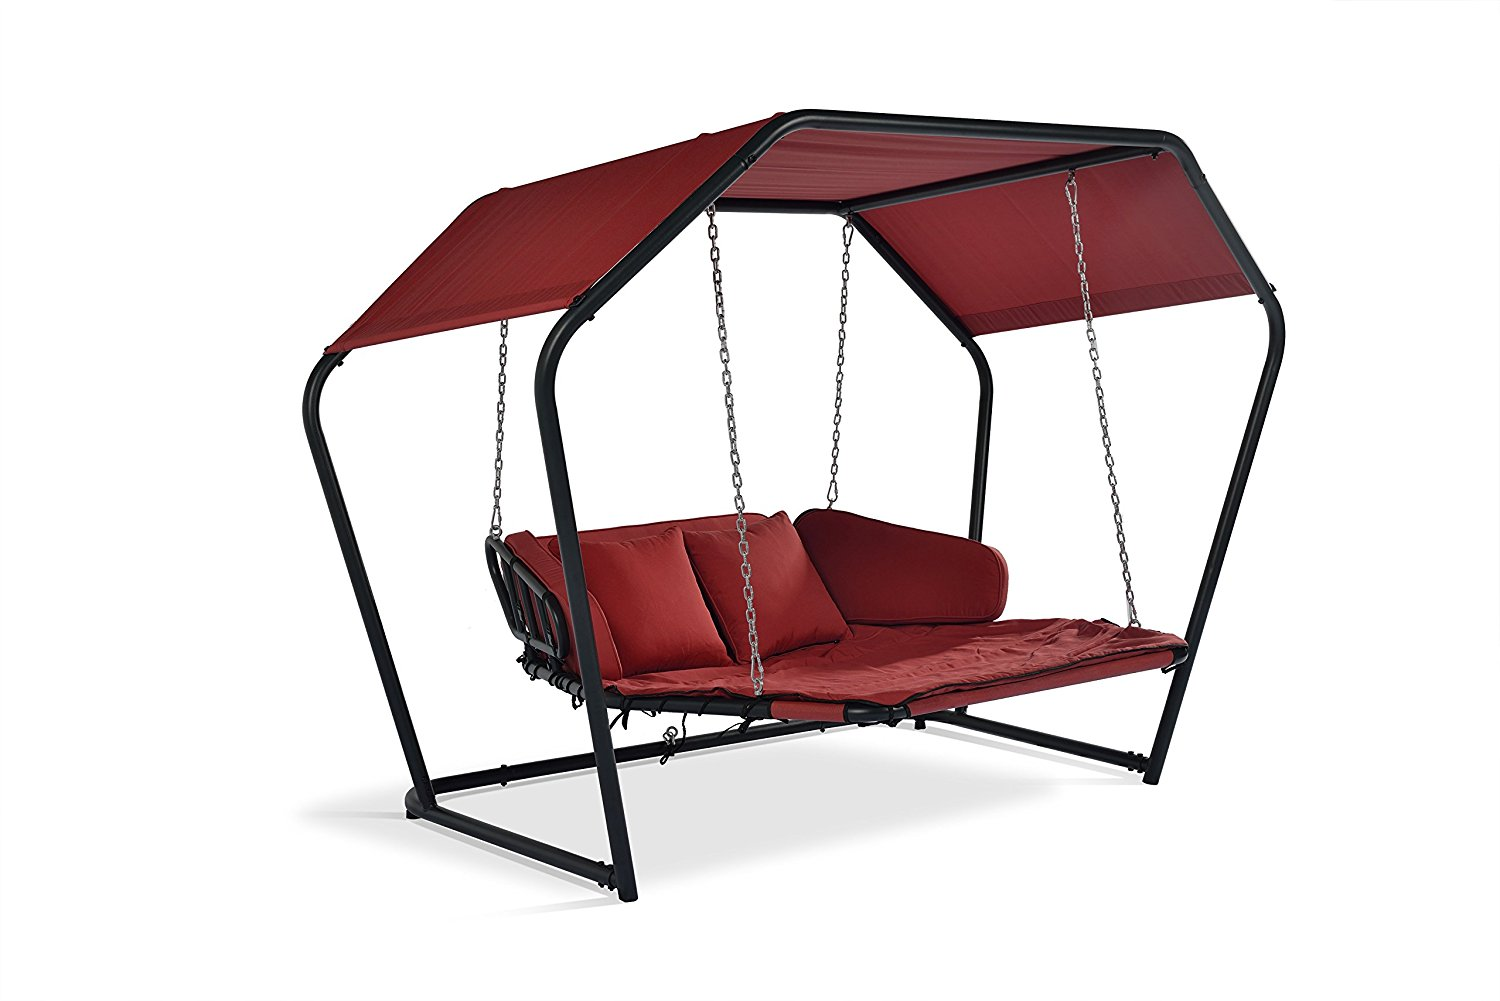 Buy Mentoriend Diamond Swing Chair,Swing Bed,Outdoor Patio Bed,With ...